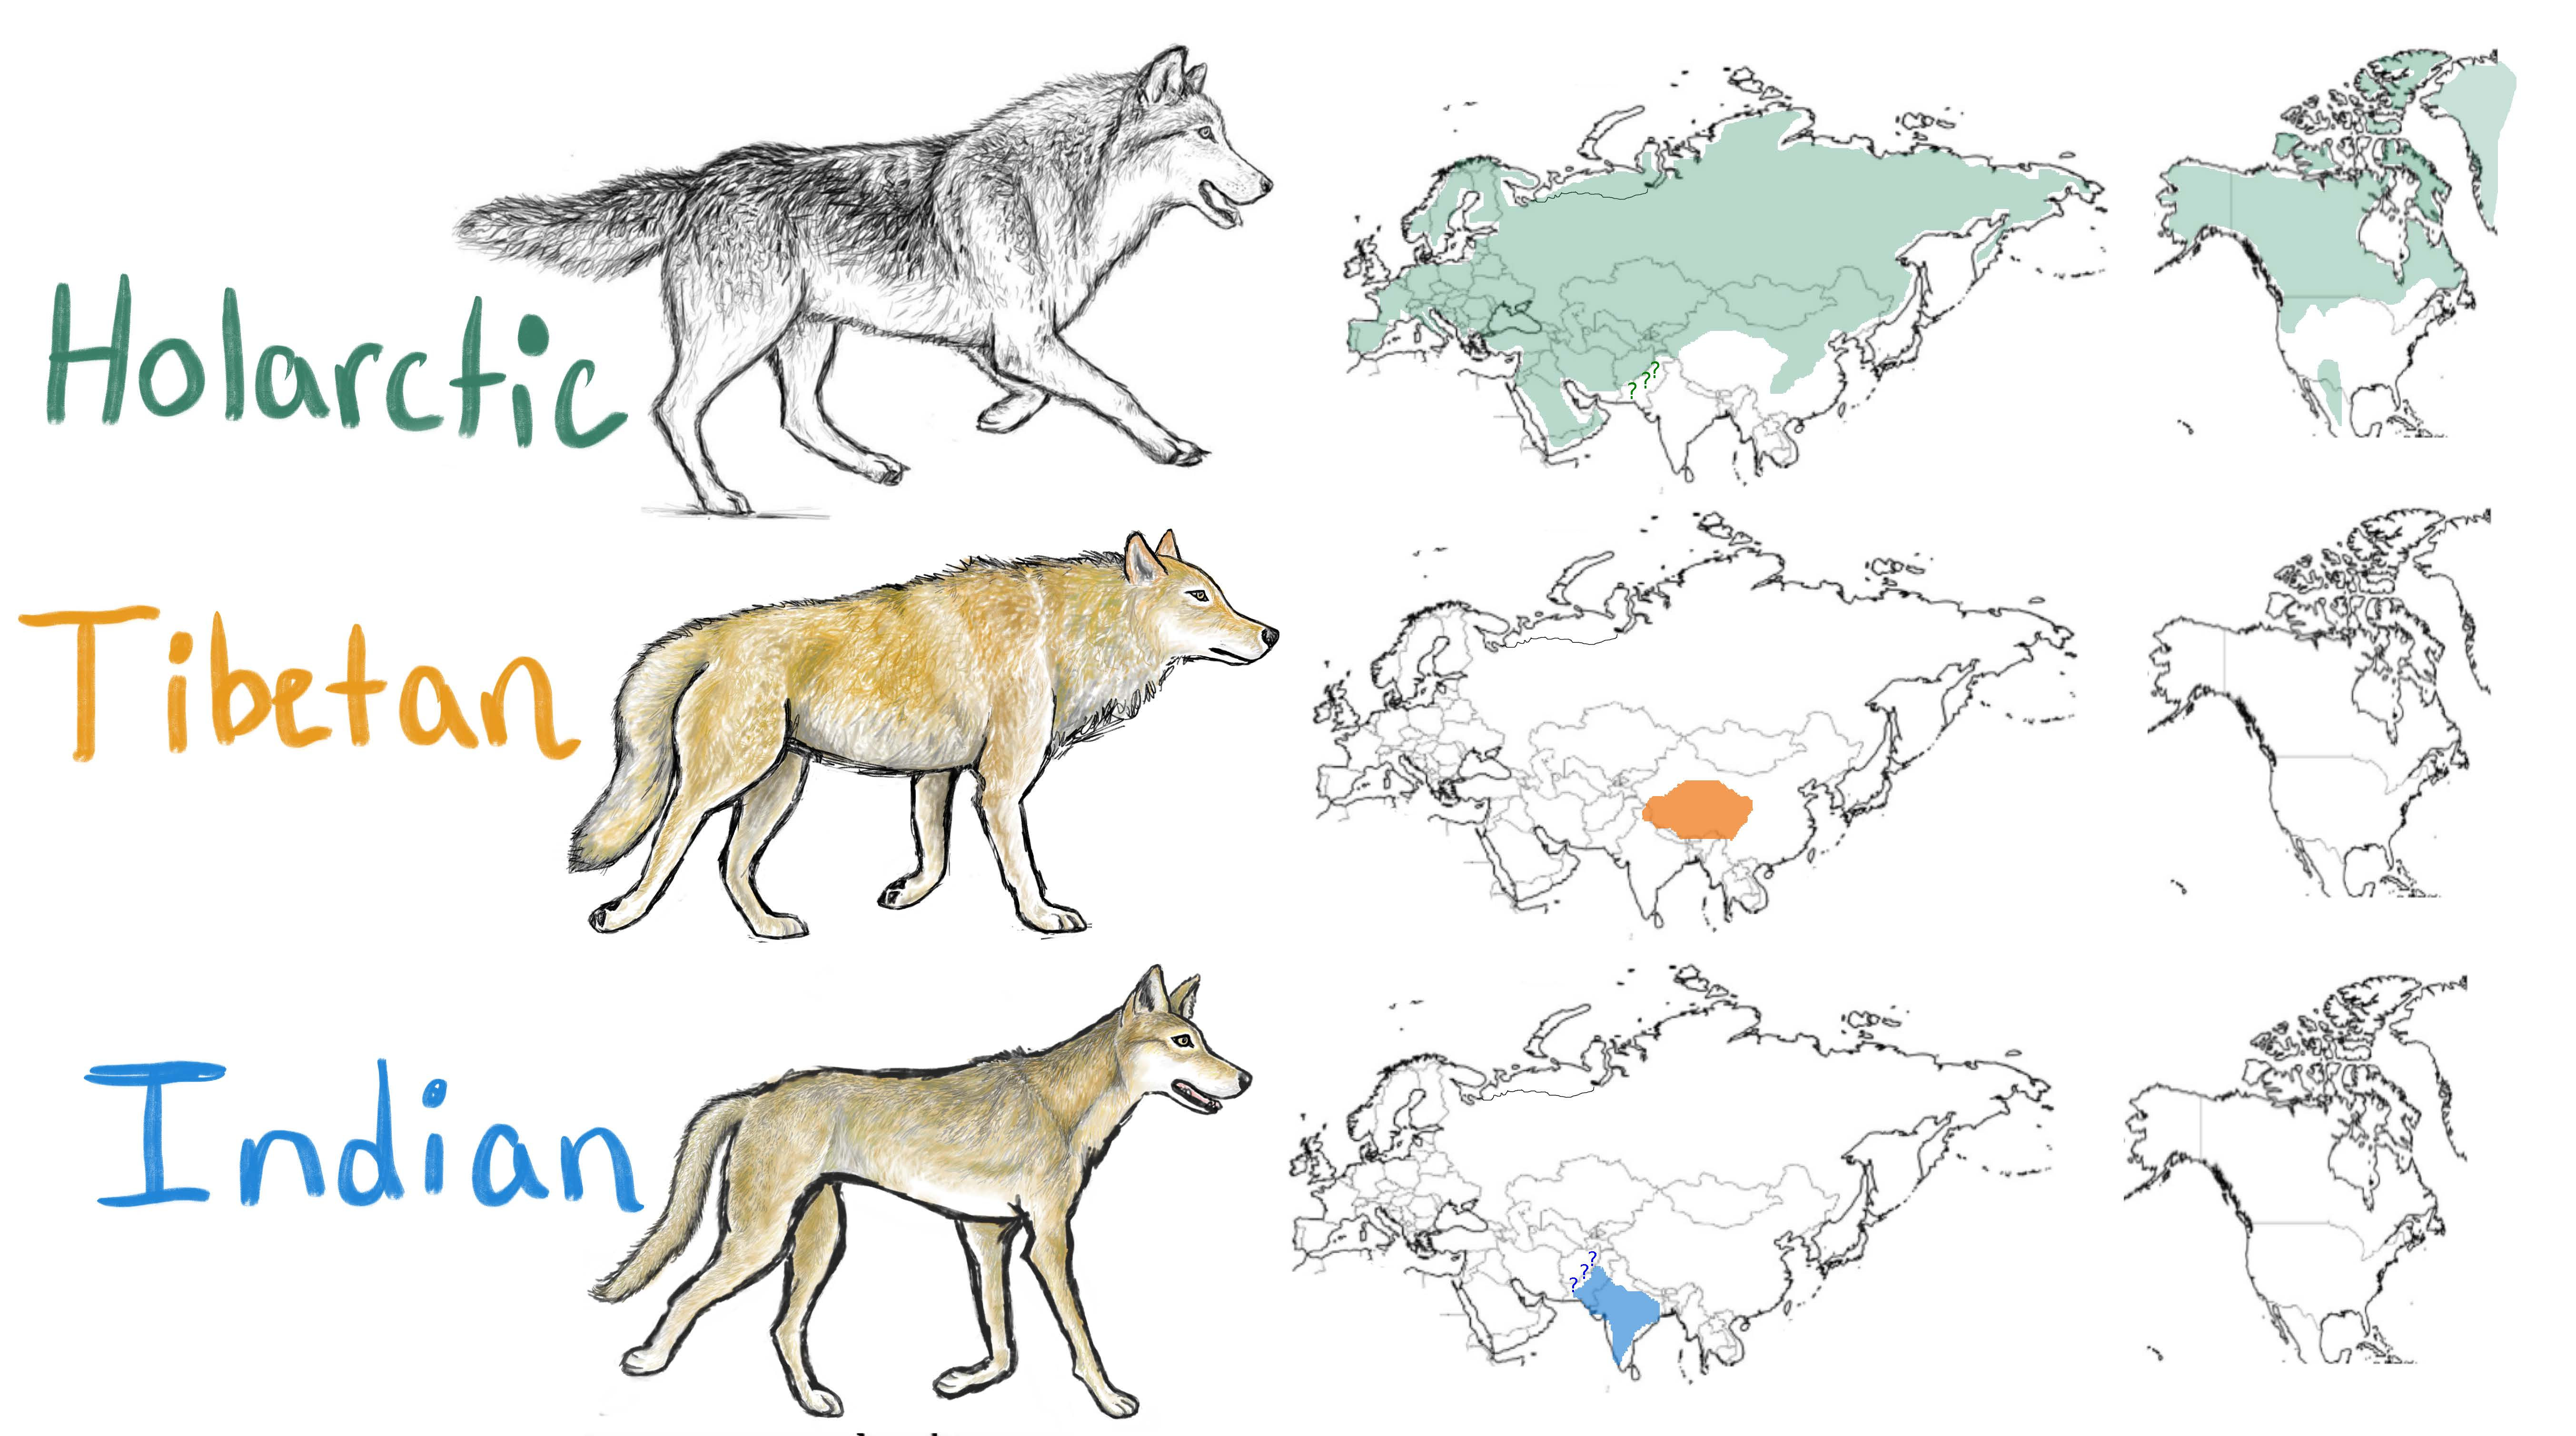 Illustration of Holarctic, Tibetan and Indian wolves and their ranges on maps in the northern hemisphere